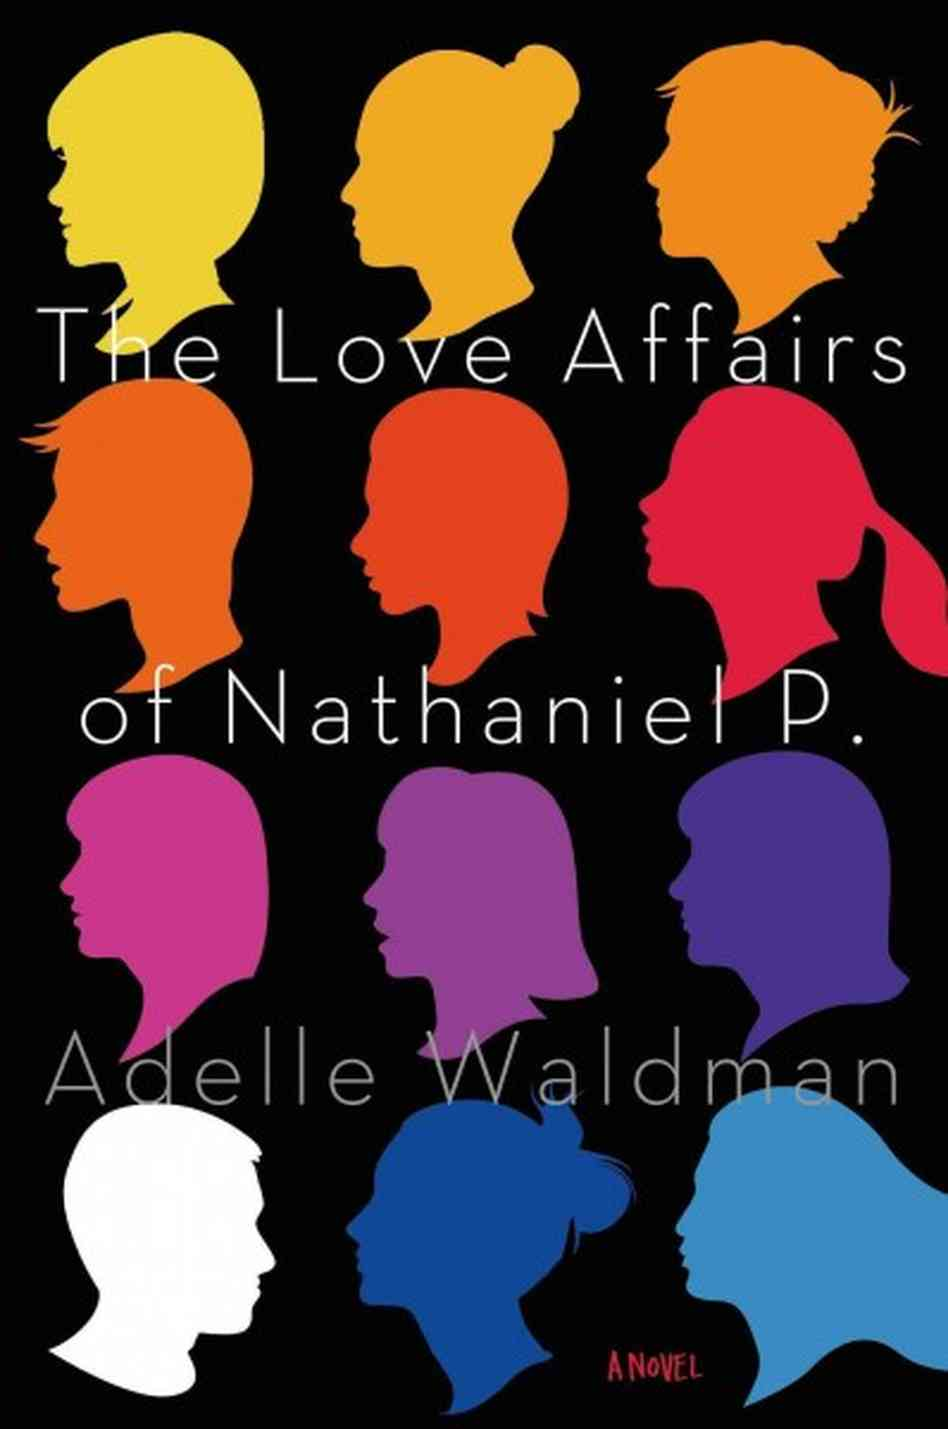 The Love Affairs of Nathaniel P. Adelle Waldman.png